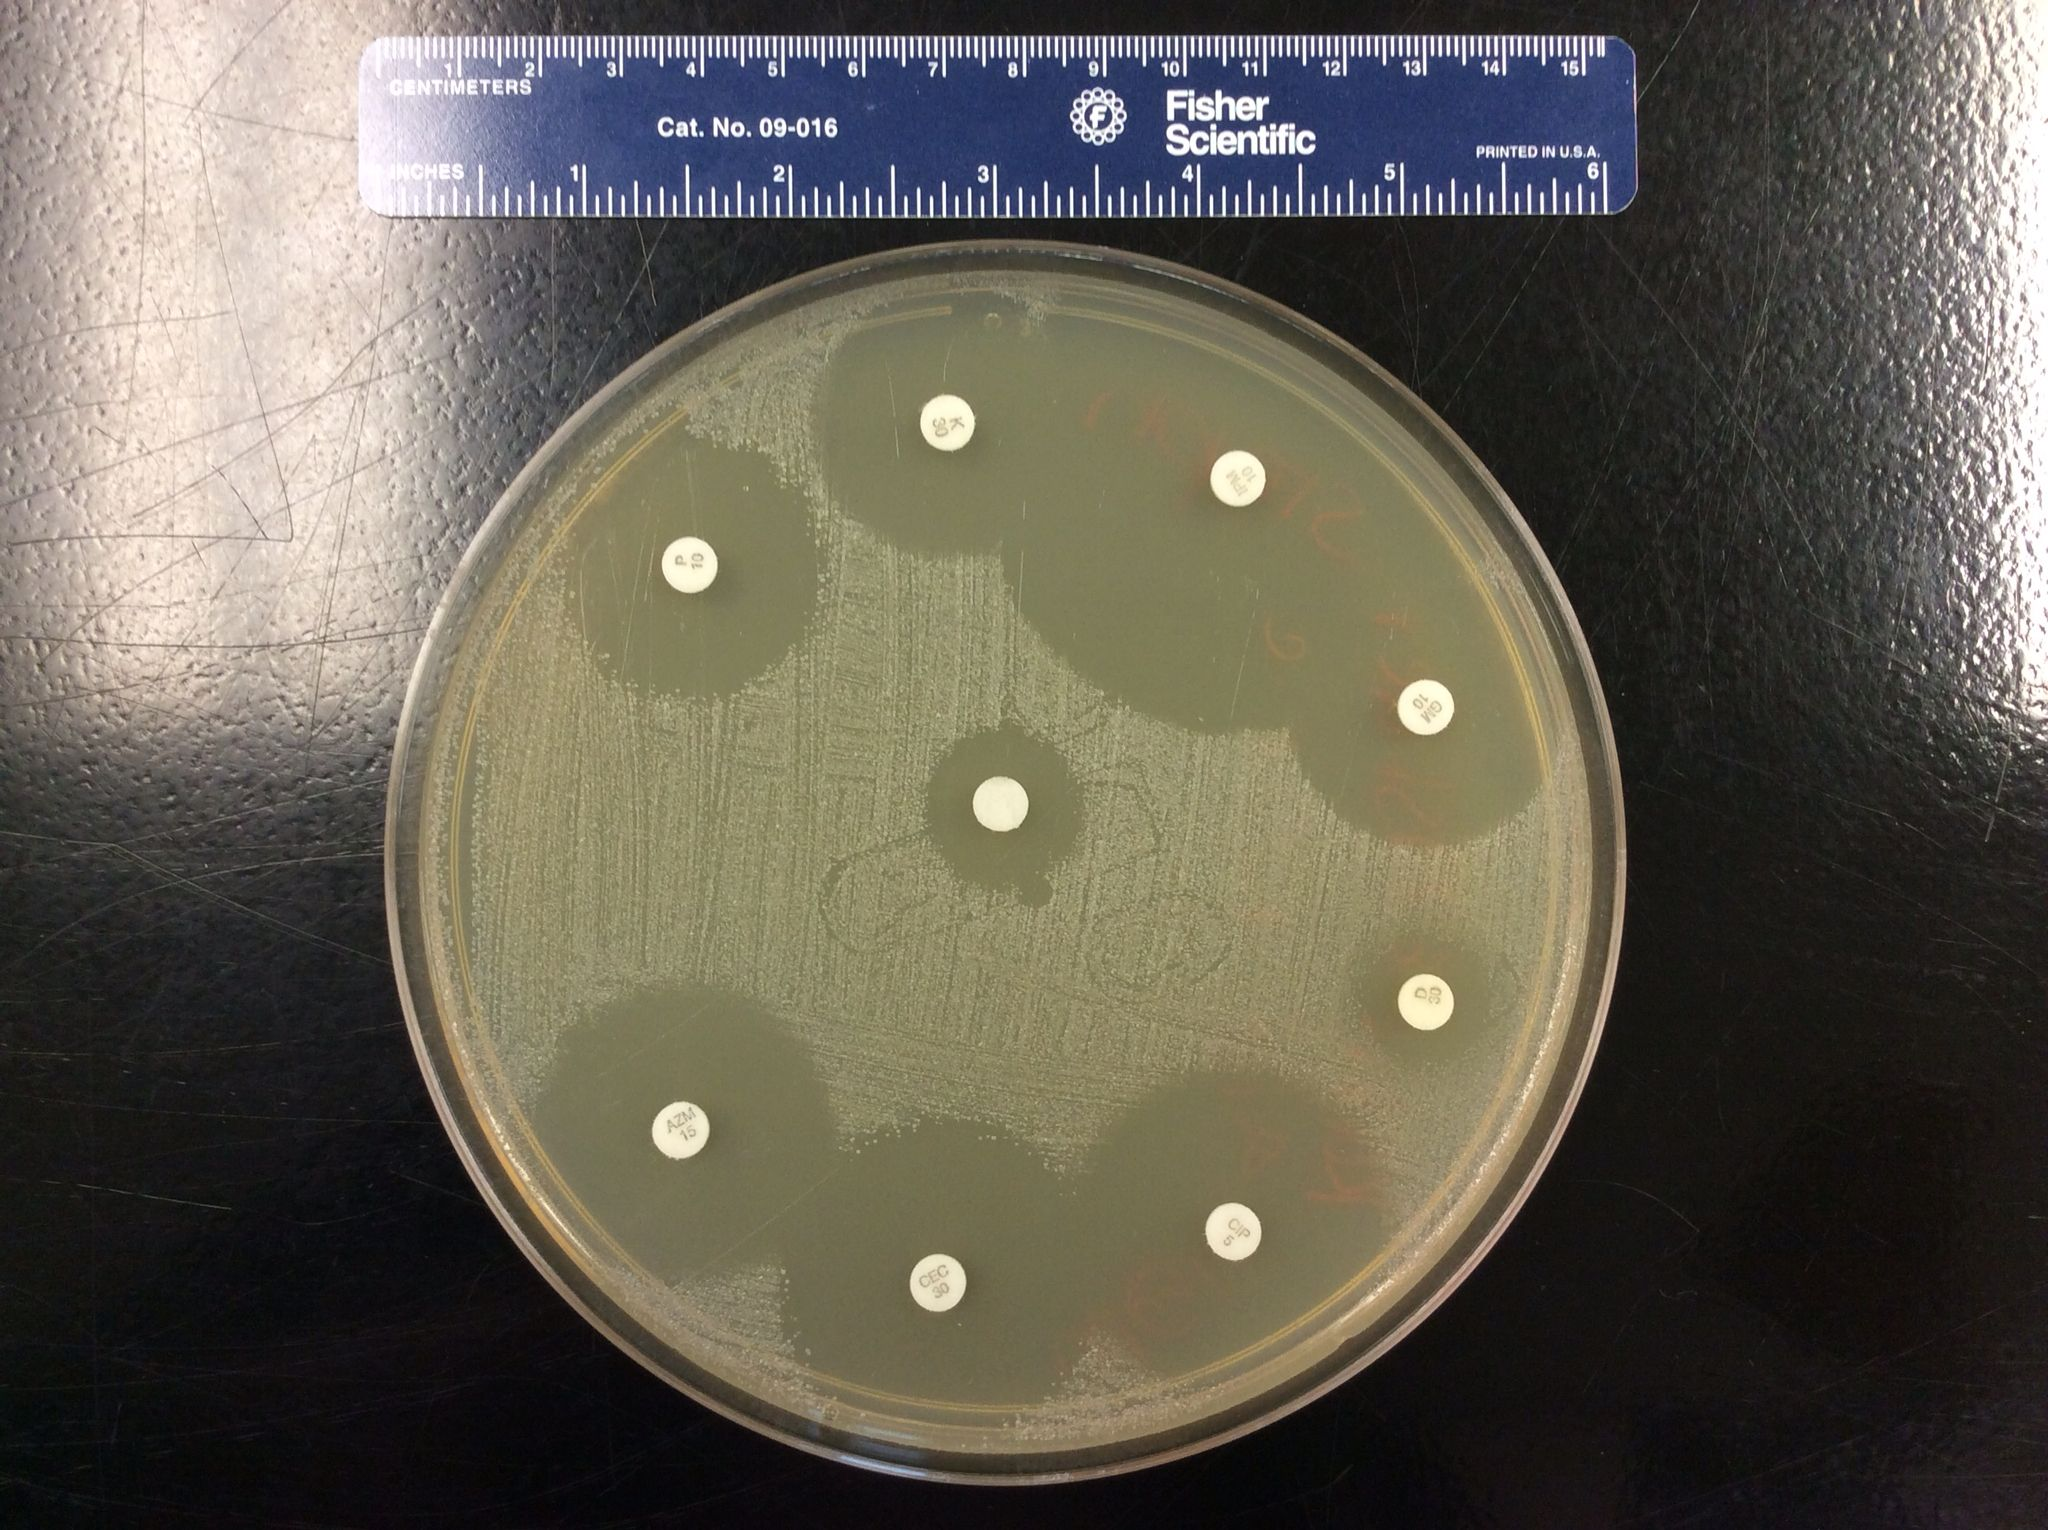 Kirby Bauer Disk Diffusion Test With Staphylococcus